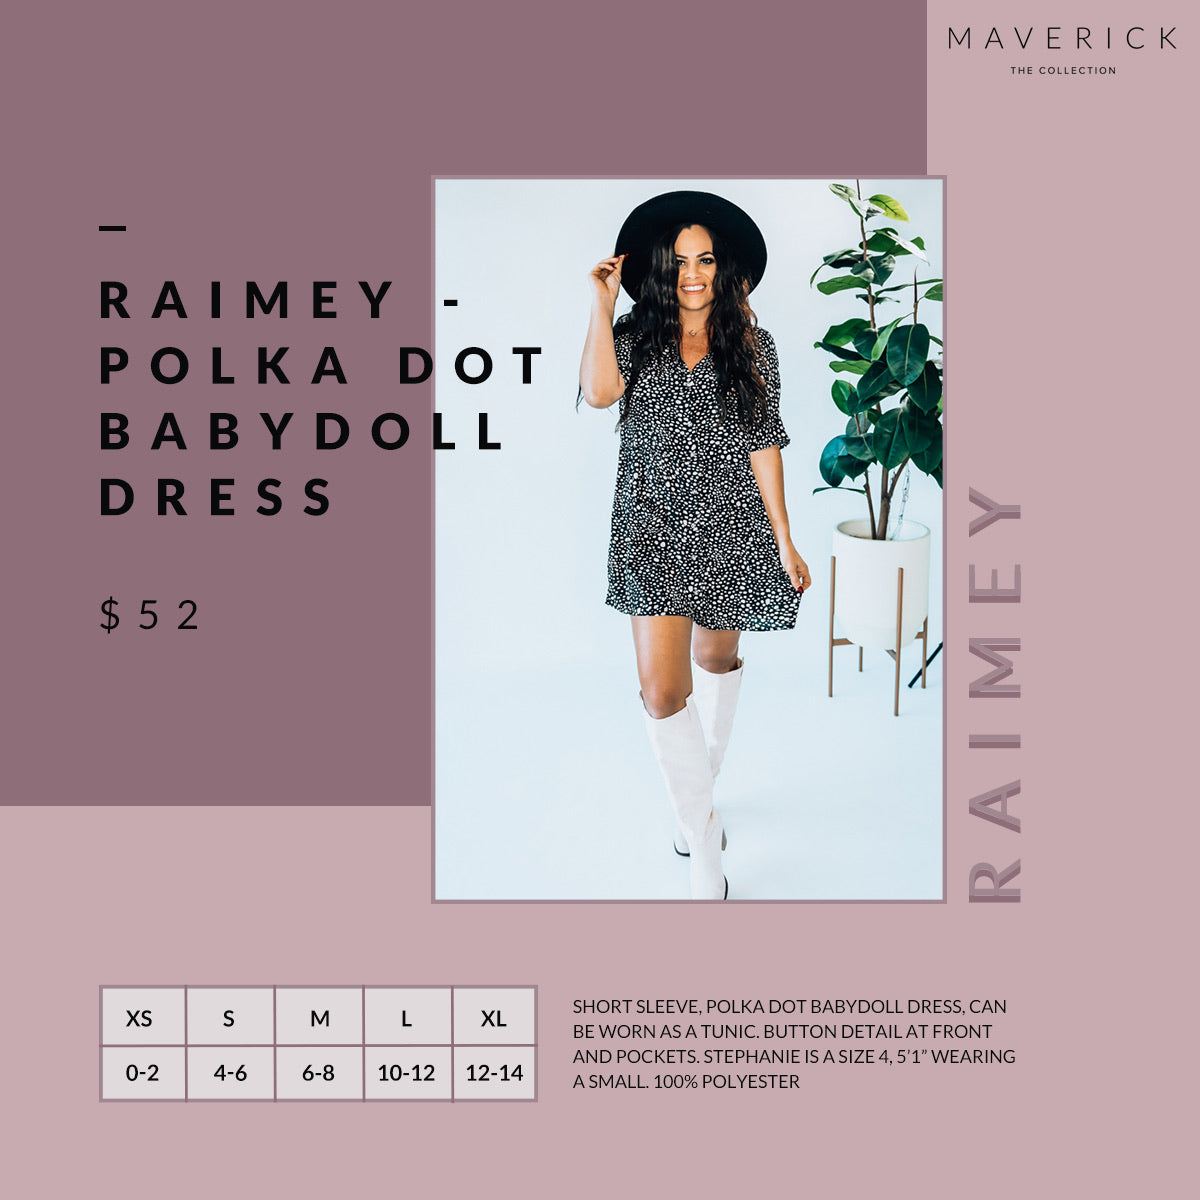 Raimey - Polka Dot Babydoll Short Sleeve Dress